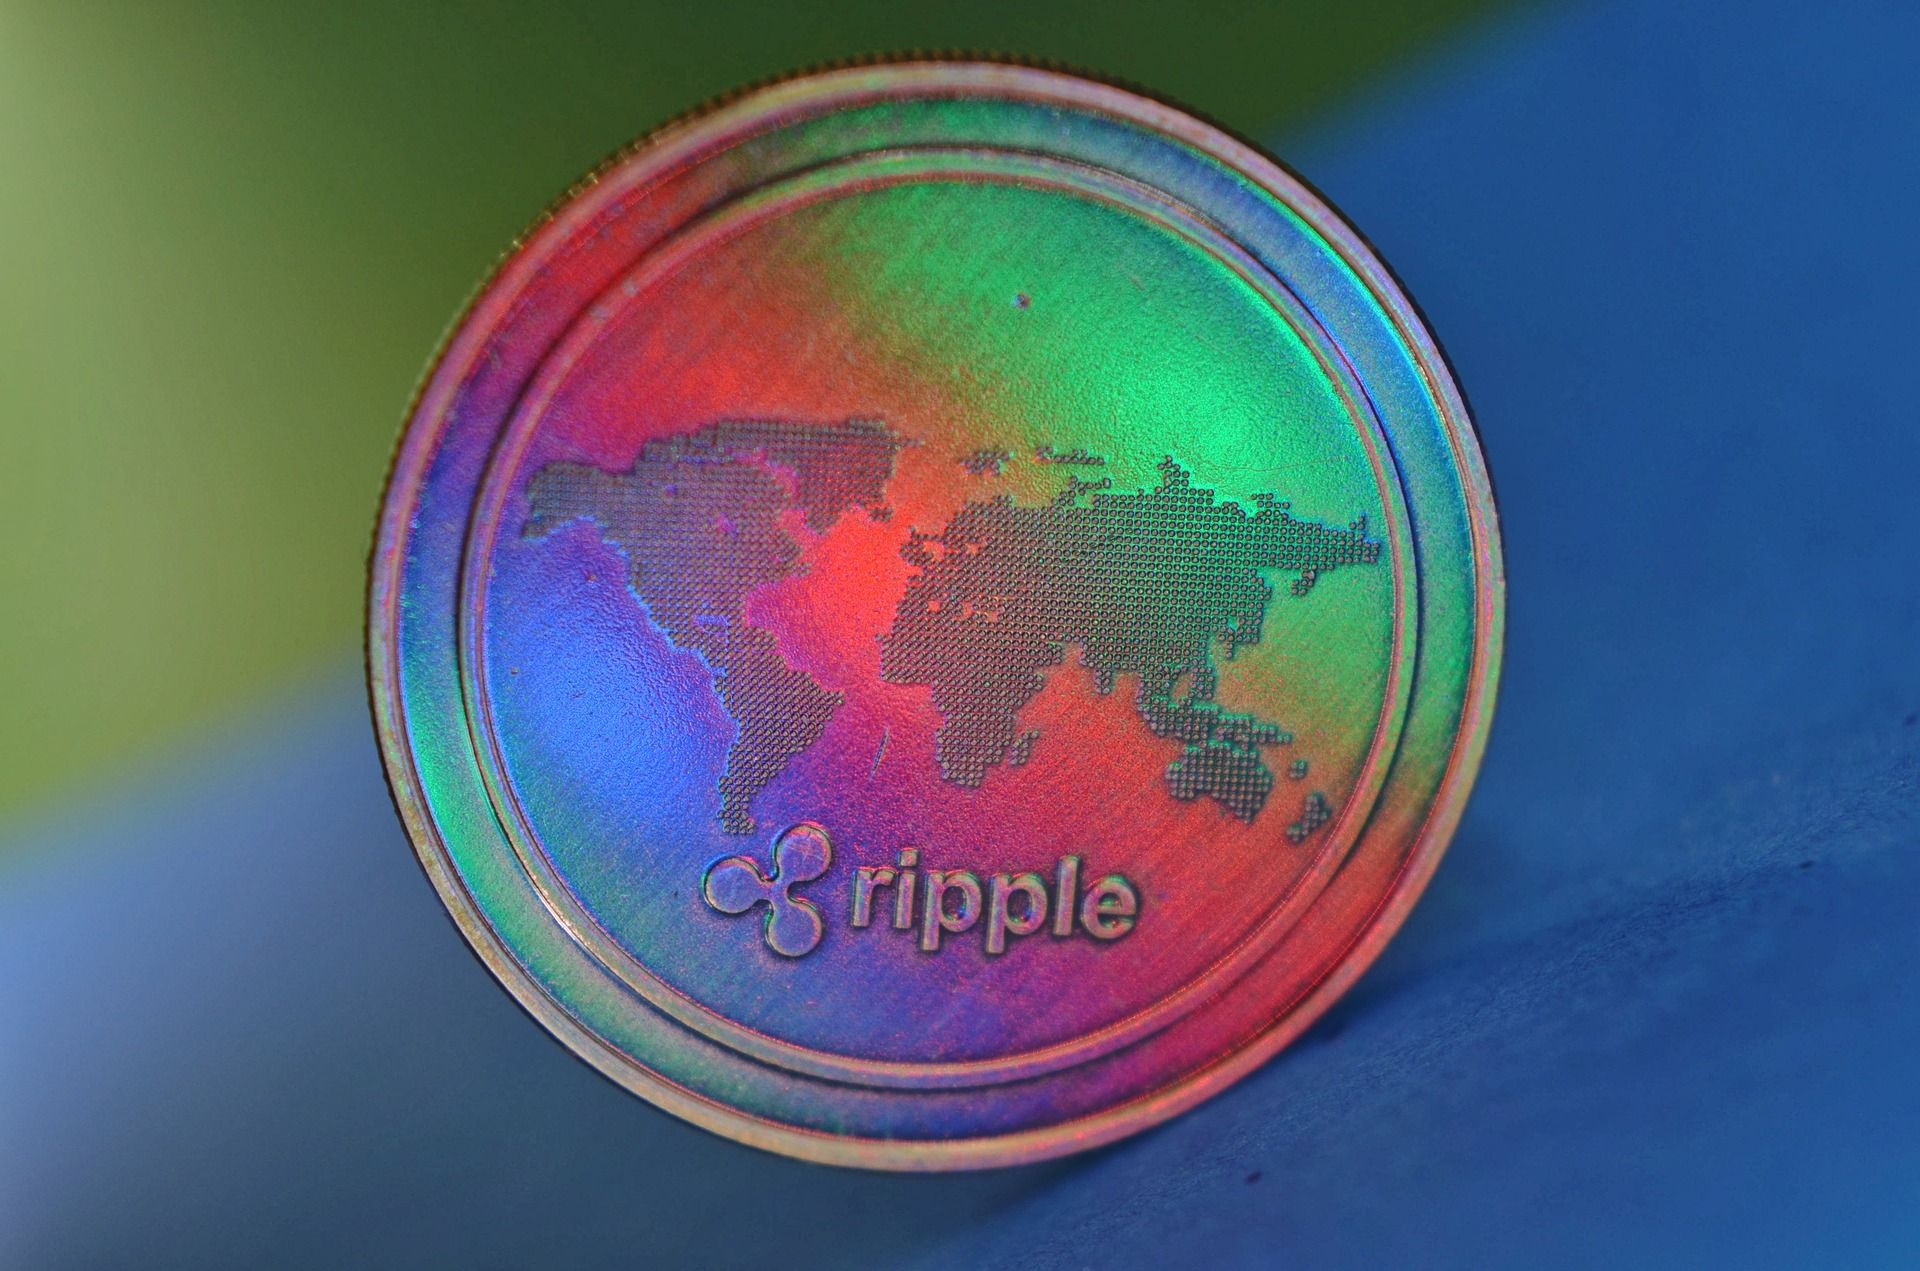 Ripple is faster and more scaleable than many other cryptocurrencies.